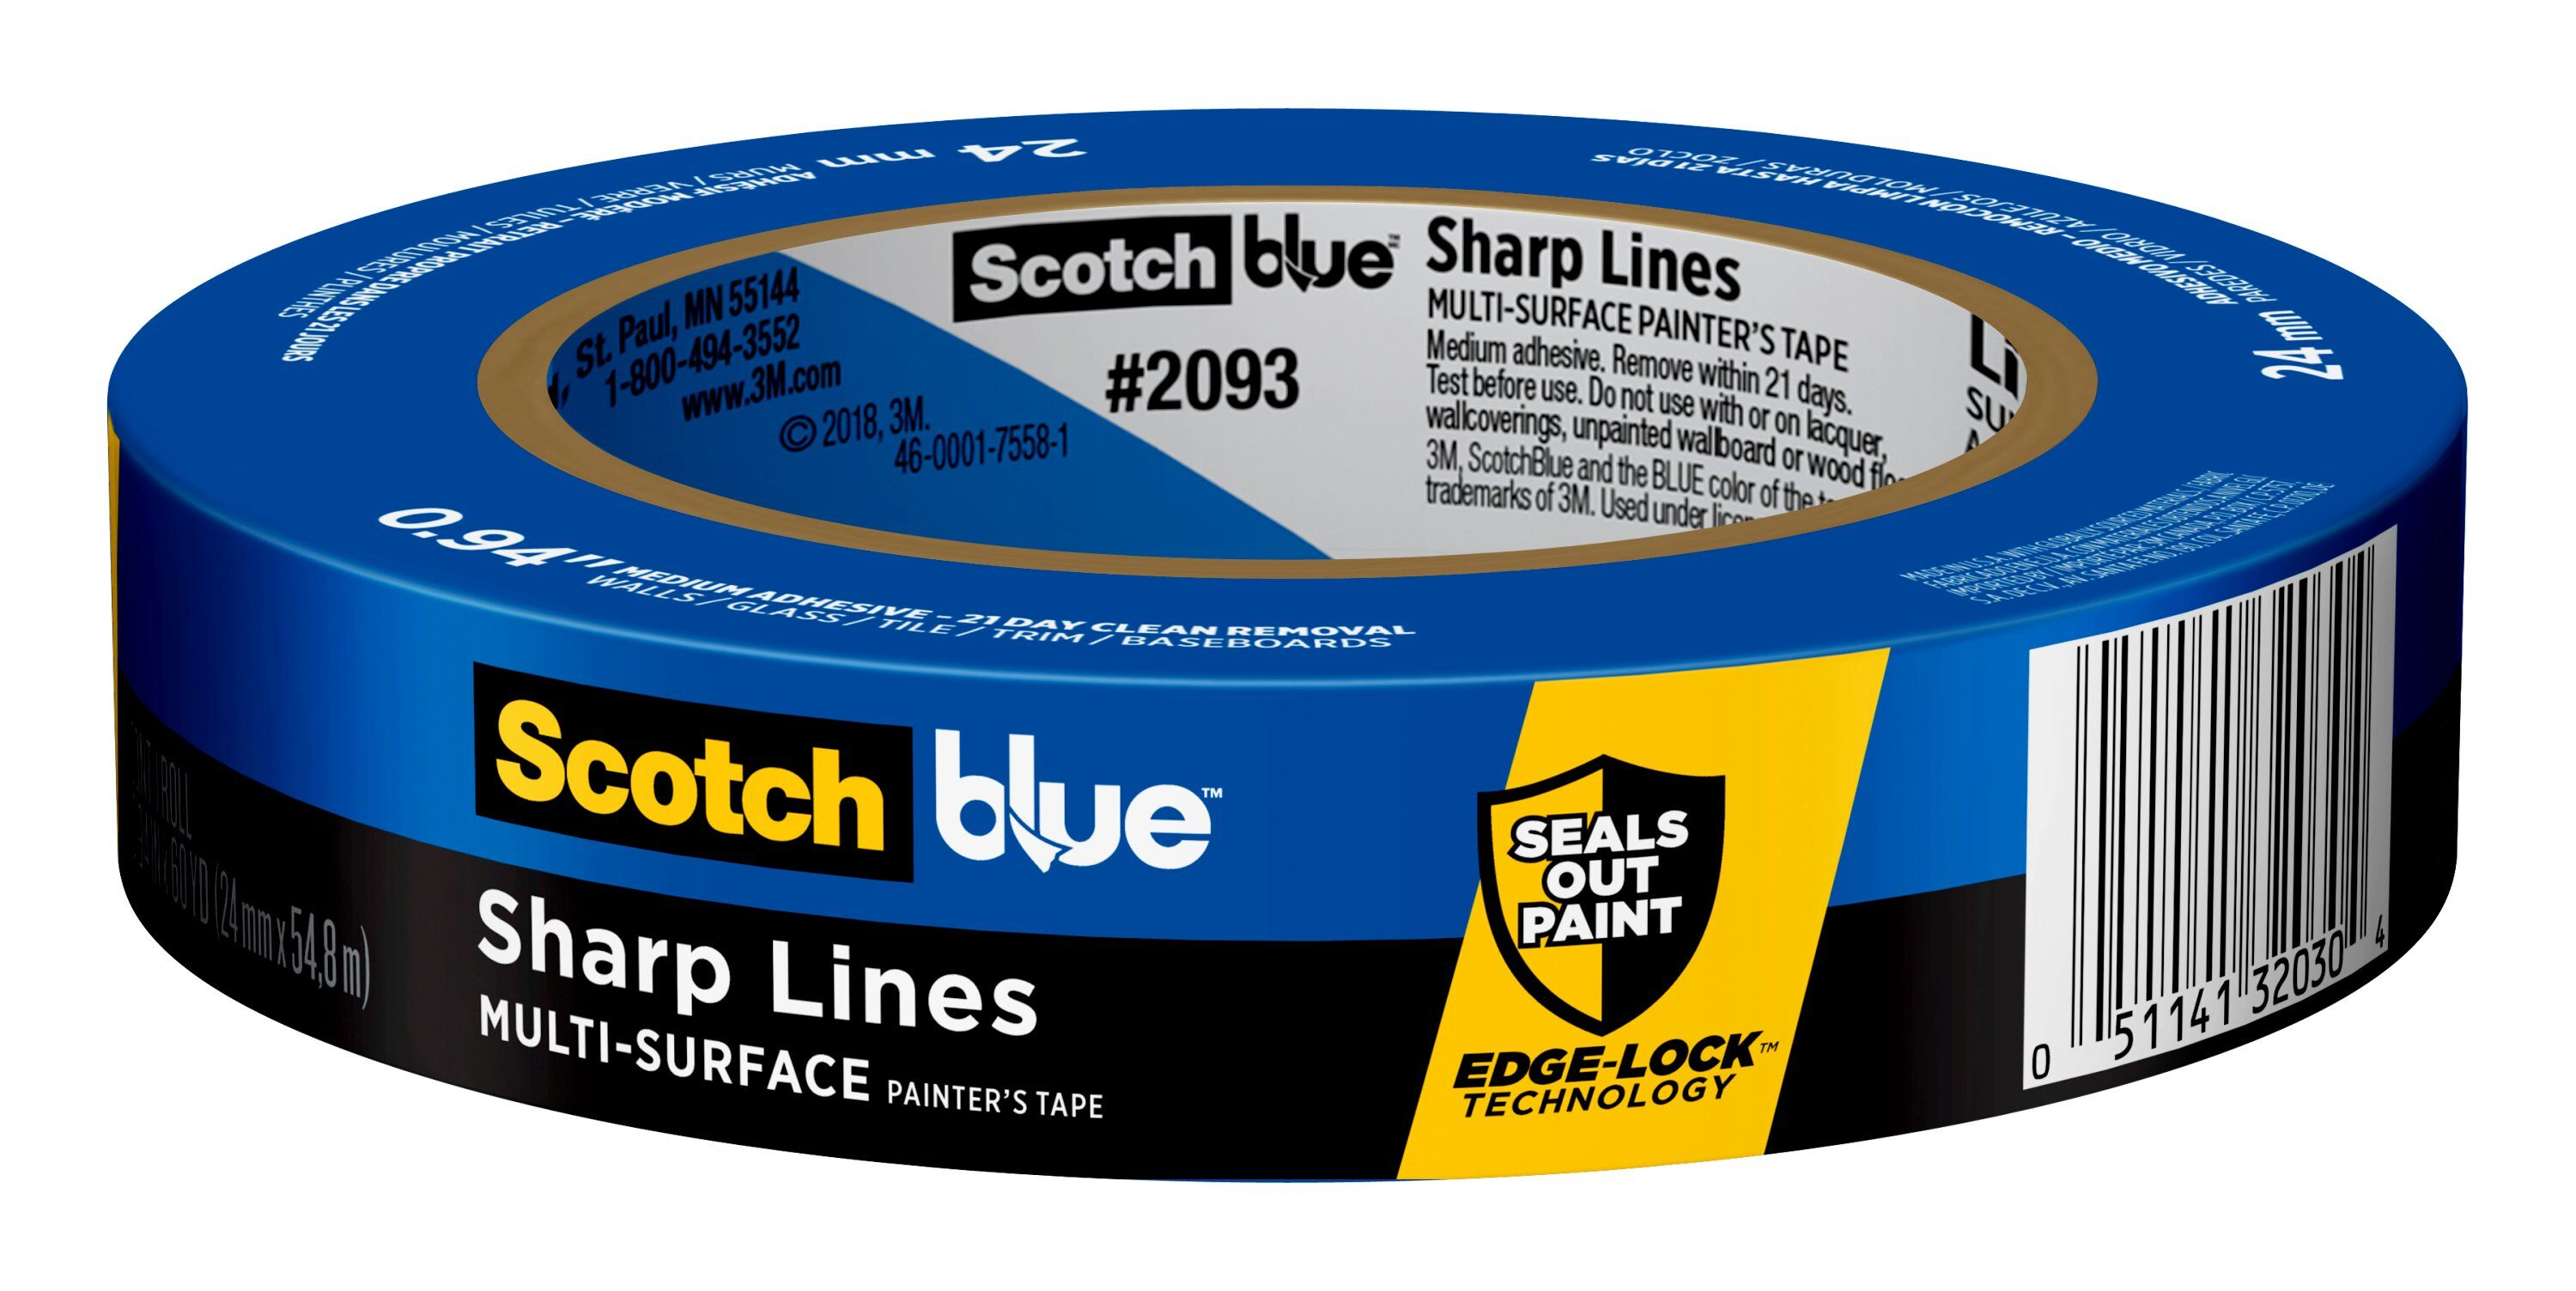 ScotchBlue Sharp Lines Painter's Tape, 0.94 in x 60 yd, 1 Roll/Pack